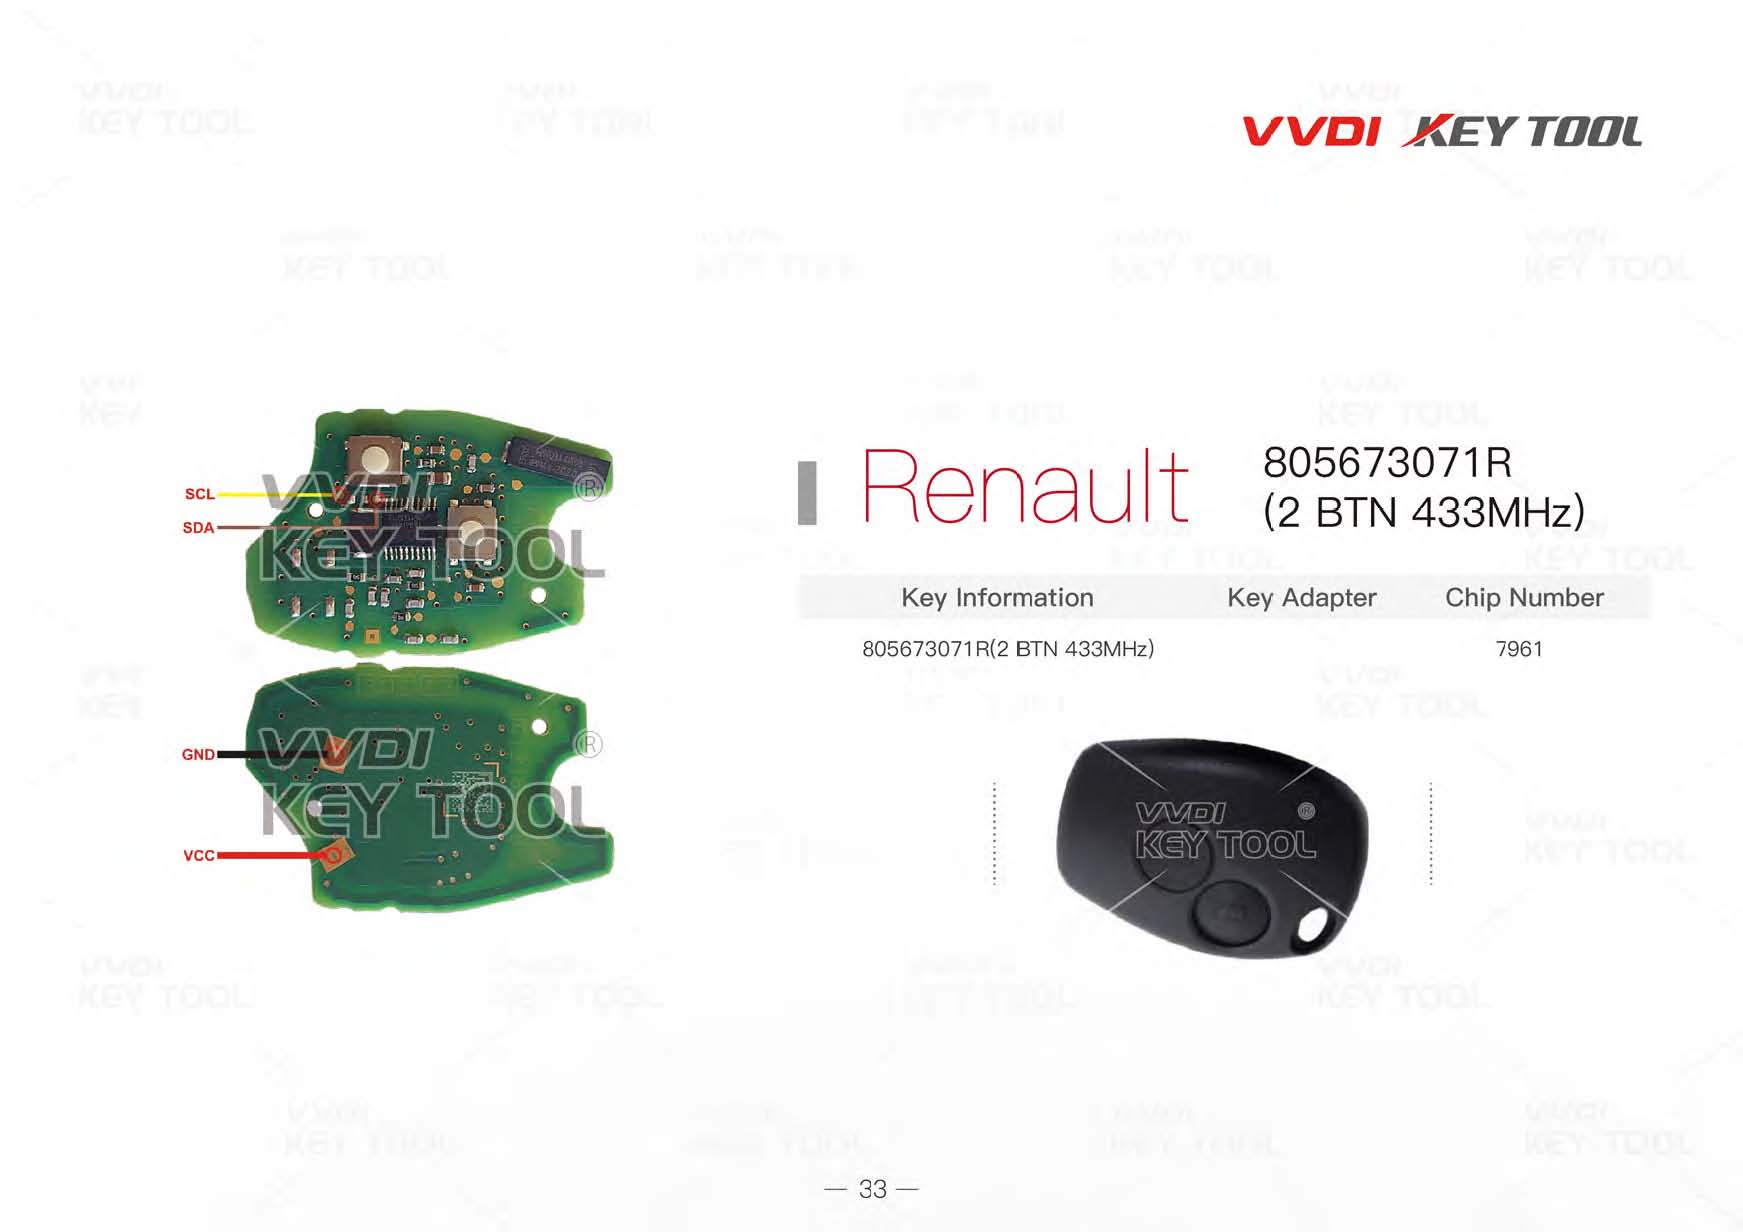 vvdi-key-tool-renew-diagram-33